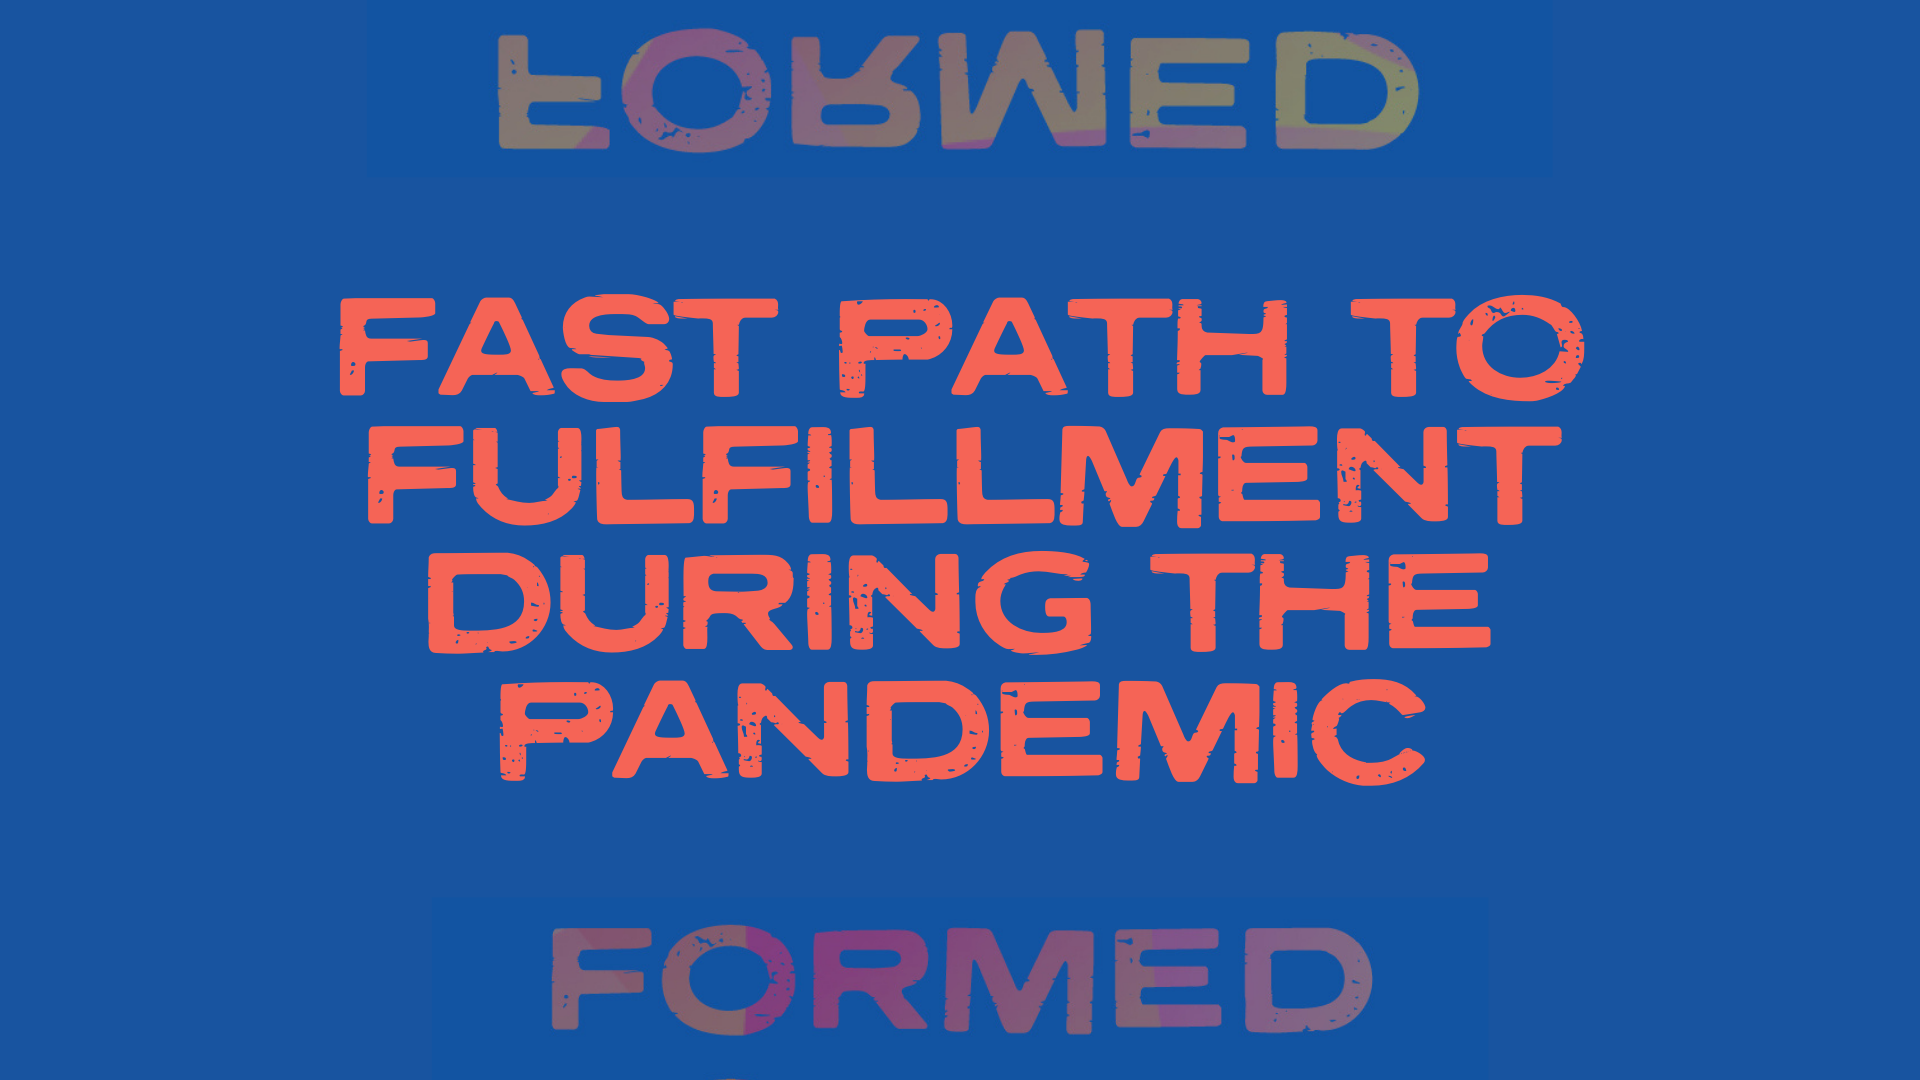 Fast Path to Fulfillment During the Pandemic